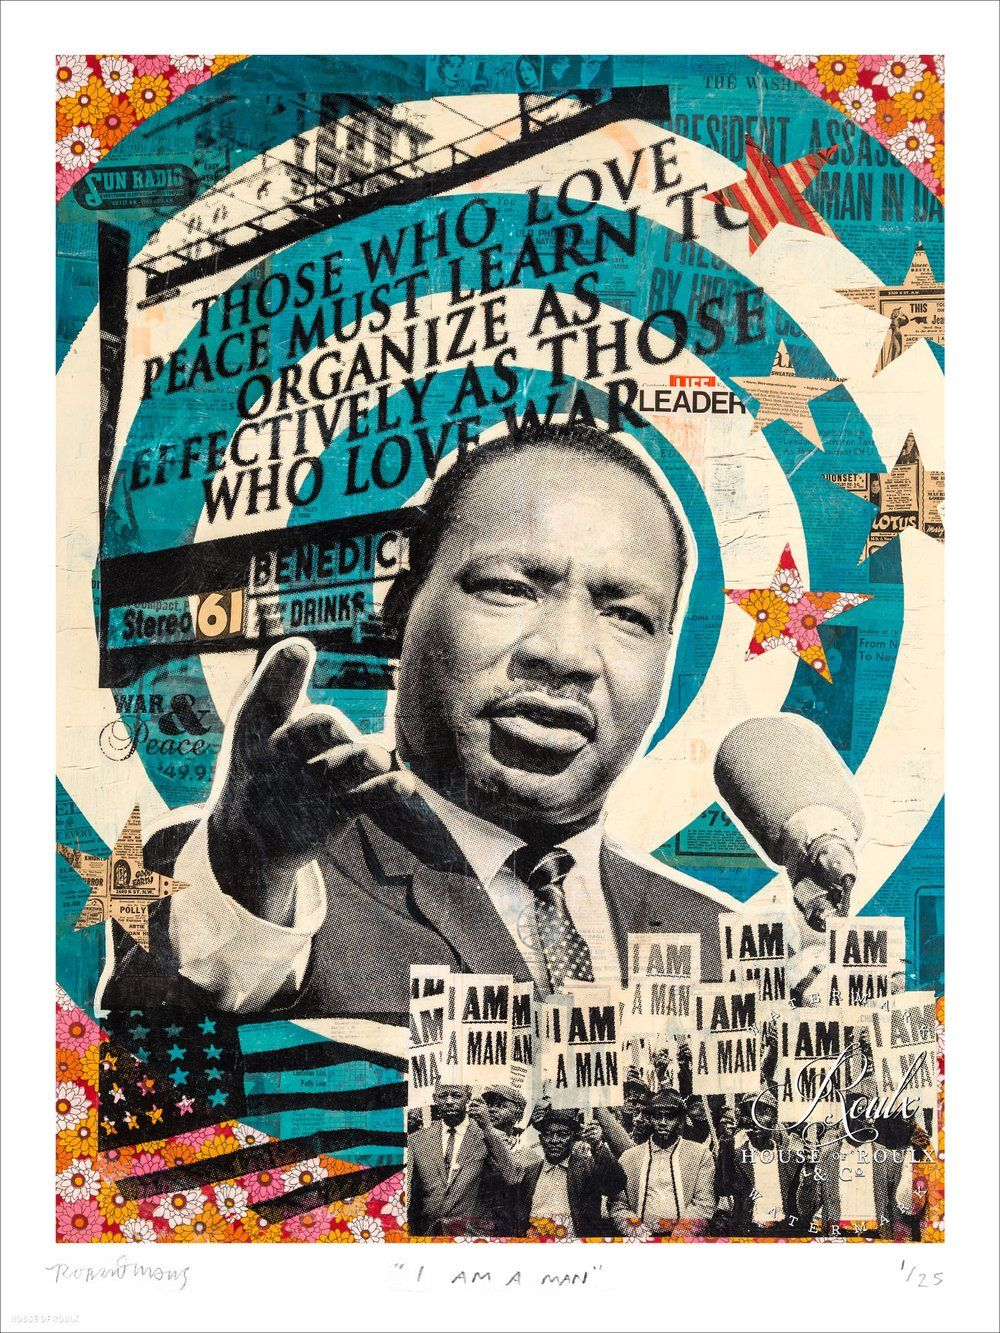 I Am A Man - Martin Luther King Jr. by Robert Mars - Limited Edition, Archival Print